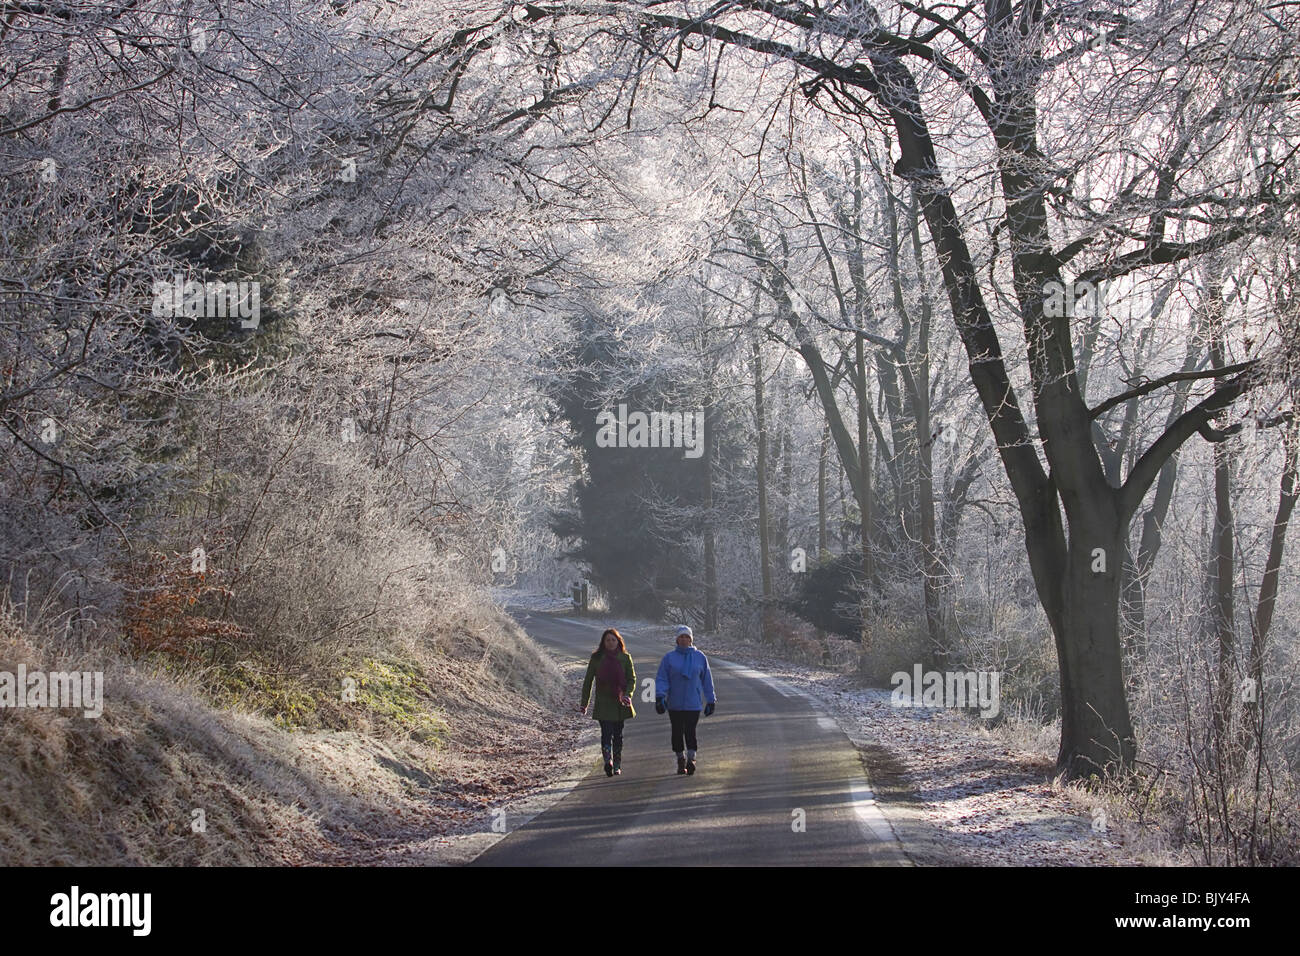 Chilterns frost walkers walking winter road cold - Stock Image